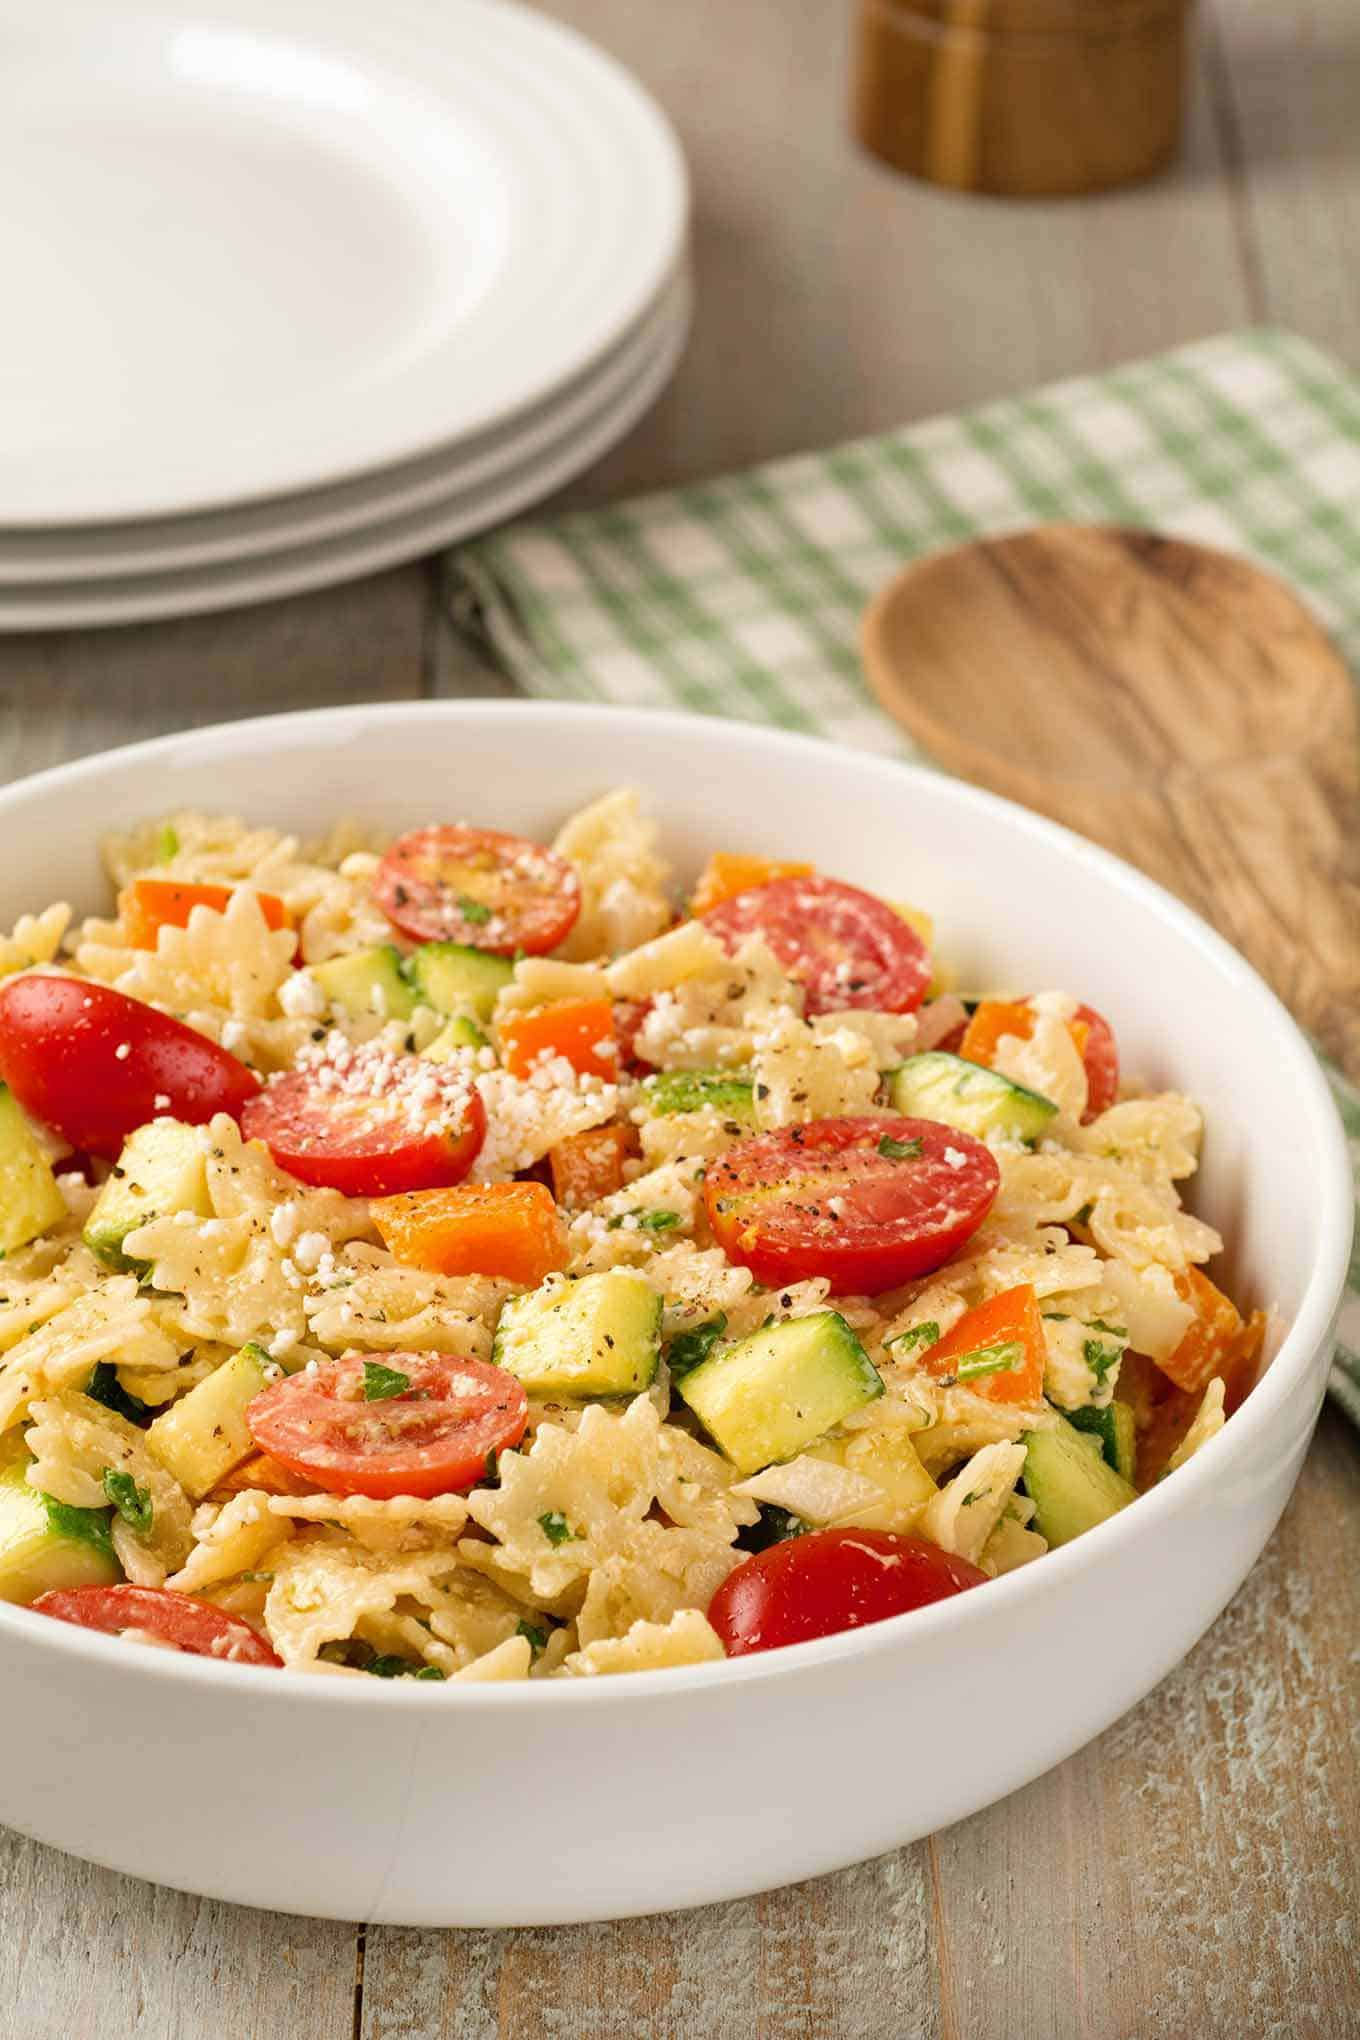 Bowl of pasta salad made with zucchini, tomatoes, bell pepper and feta cheese.